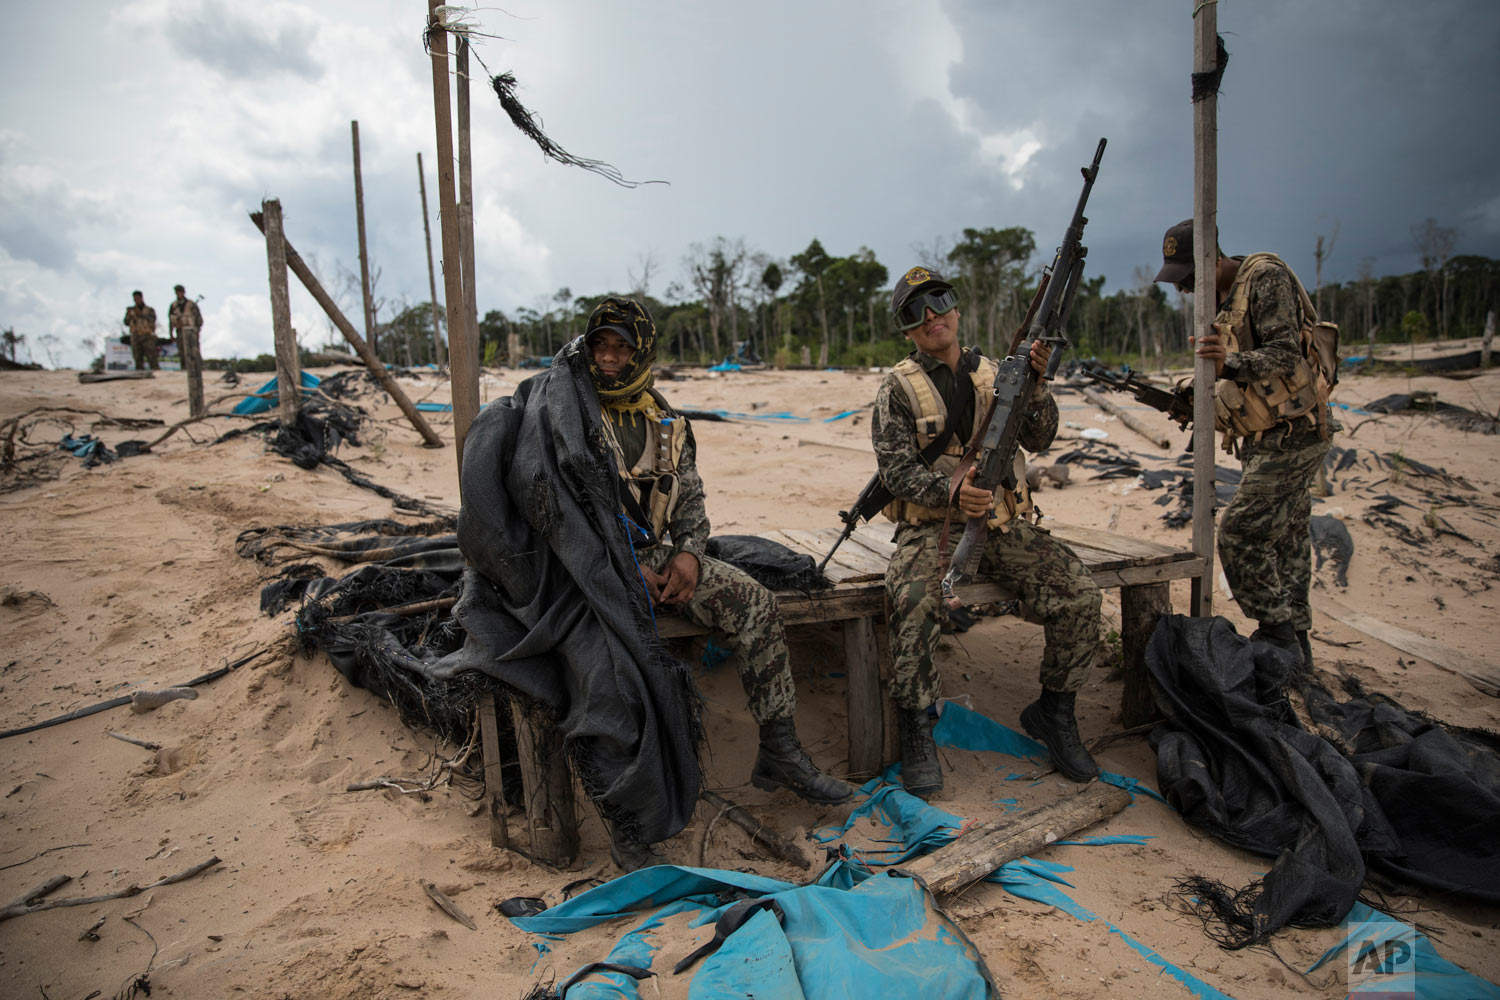 In this April 1, 2019 photo, soldiers wait for the arrival of a helicopter bringing supplies and replacements, on a makeshift airstrip of the Balata police and military base in Peru's Tambopata province. Peru has installed military bases in the province in hopes of curbing not just illegal mining but also human trafficking and other associated crimes. (AP Photo/Rodrigo Abd)